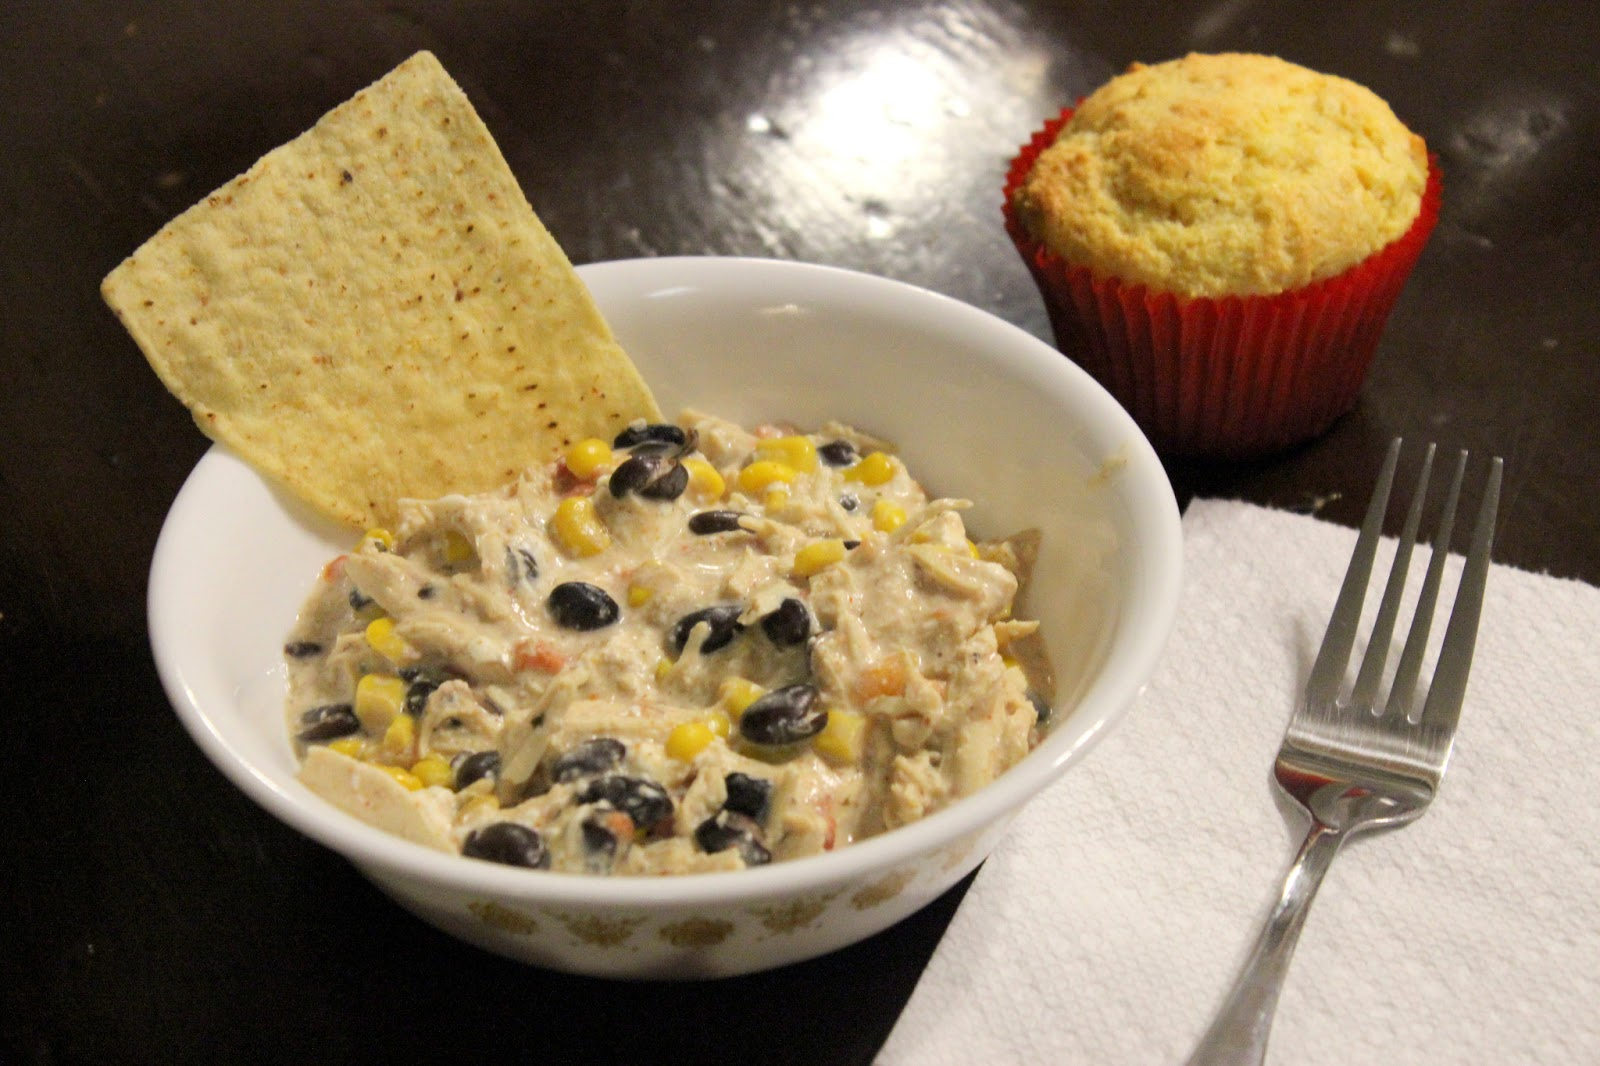 Cupcakes and Pearls: Cream Cheese Chicken Chili